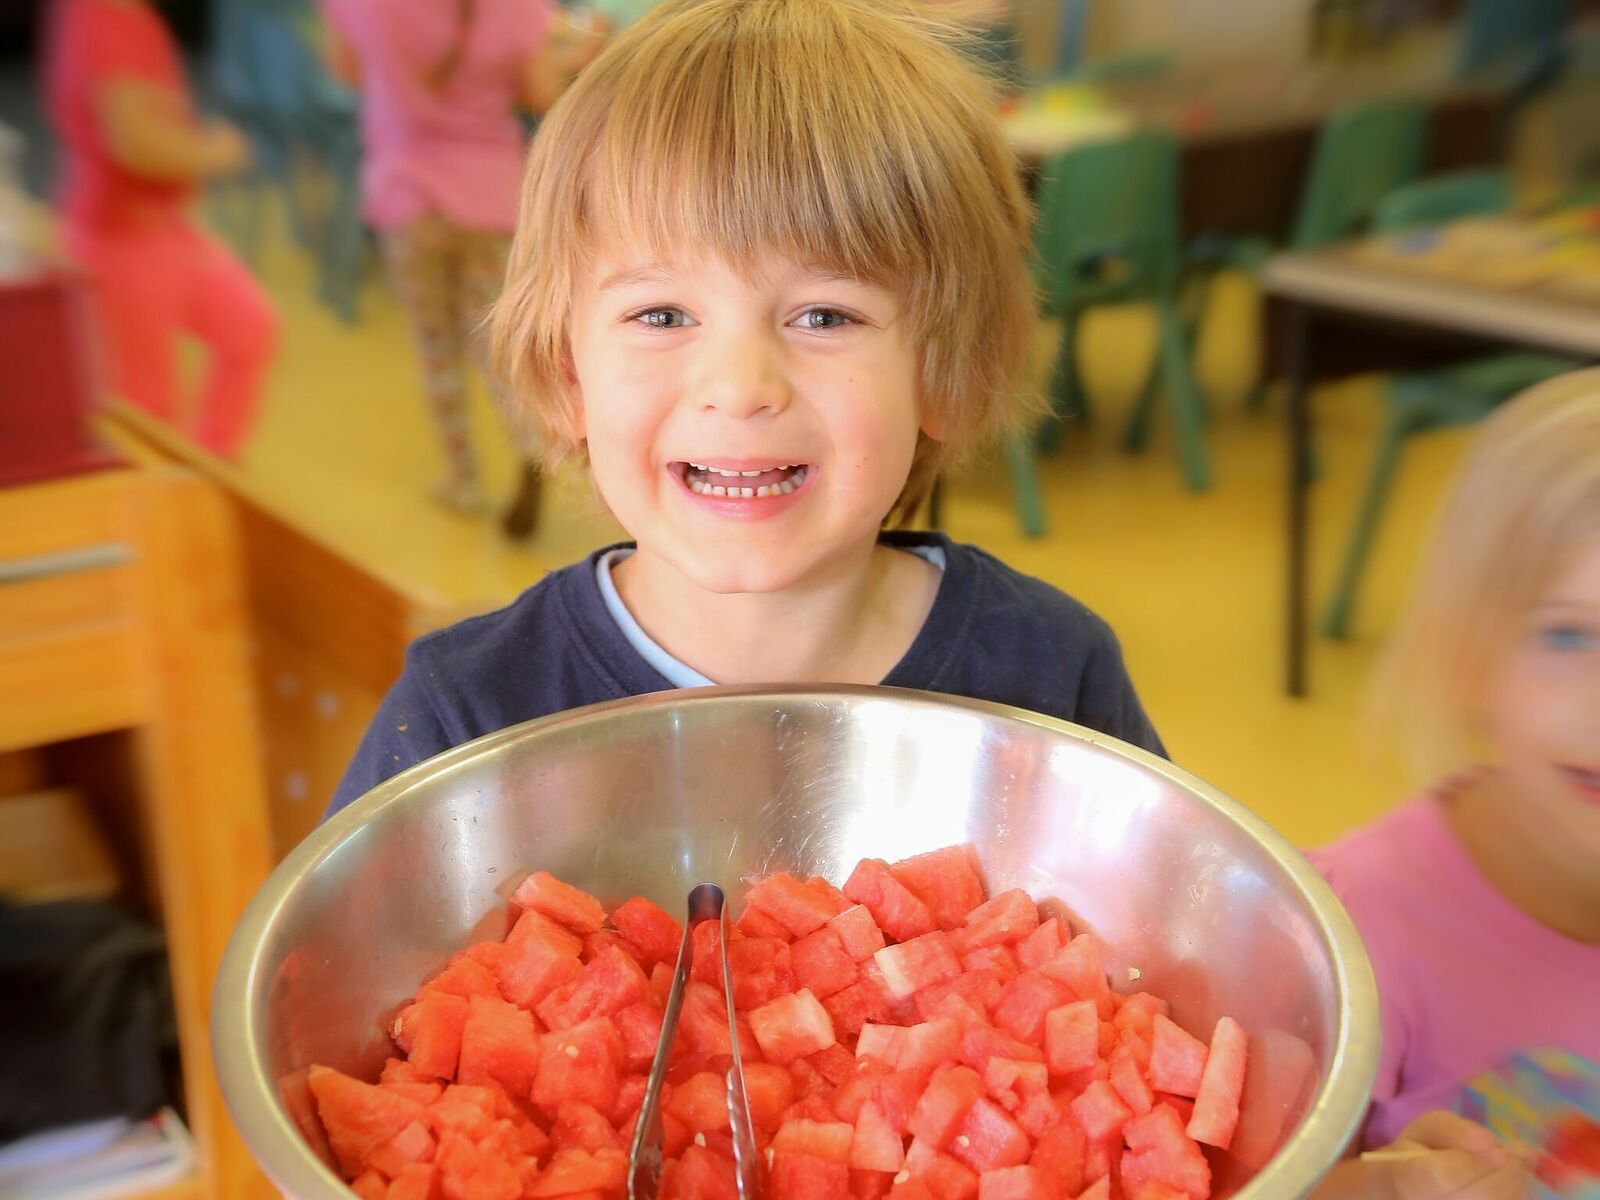 Childcare, child with watermelon.jpg